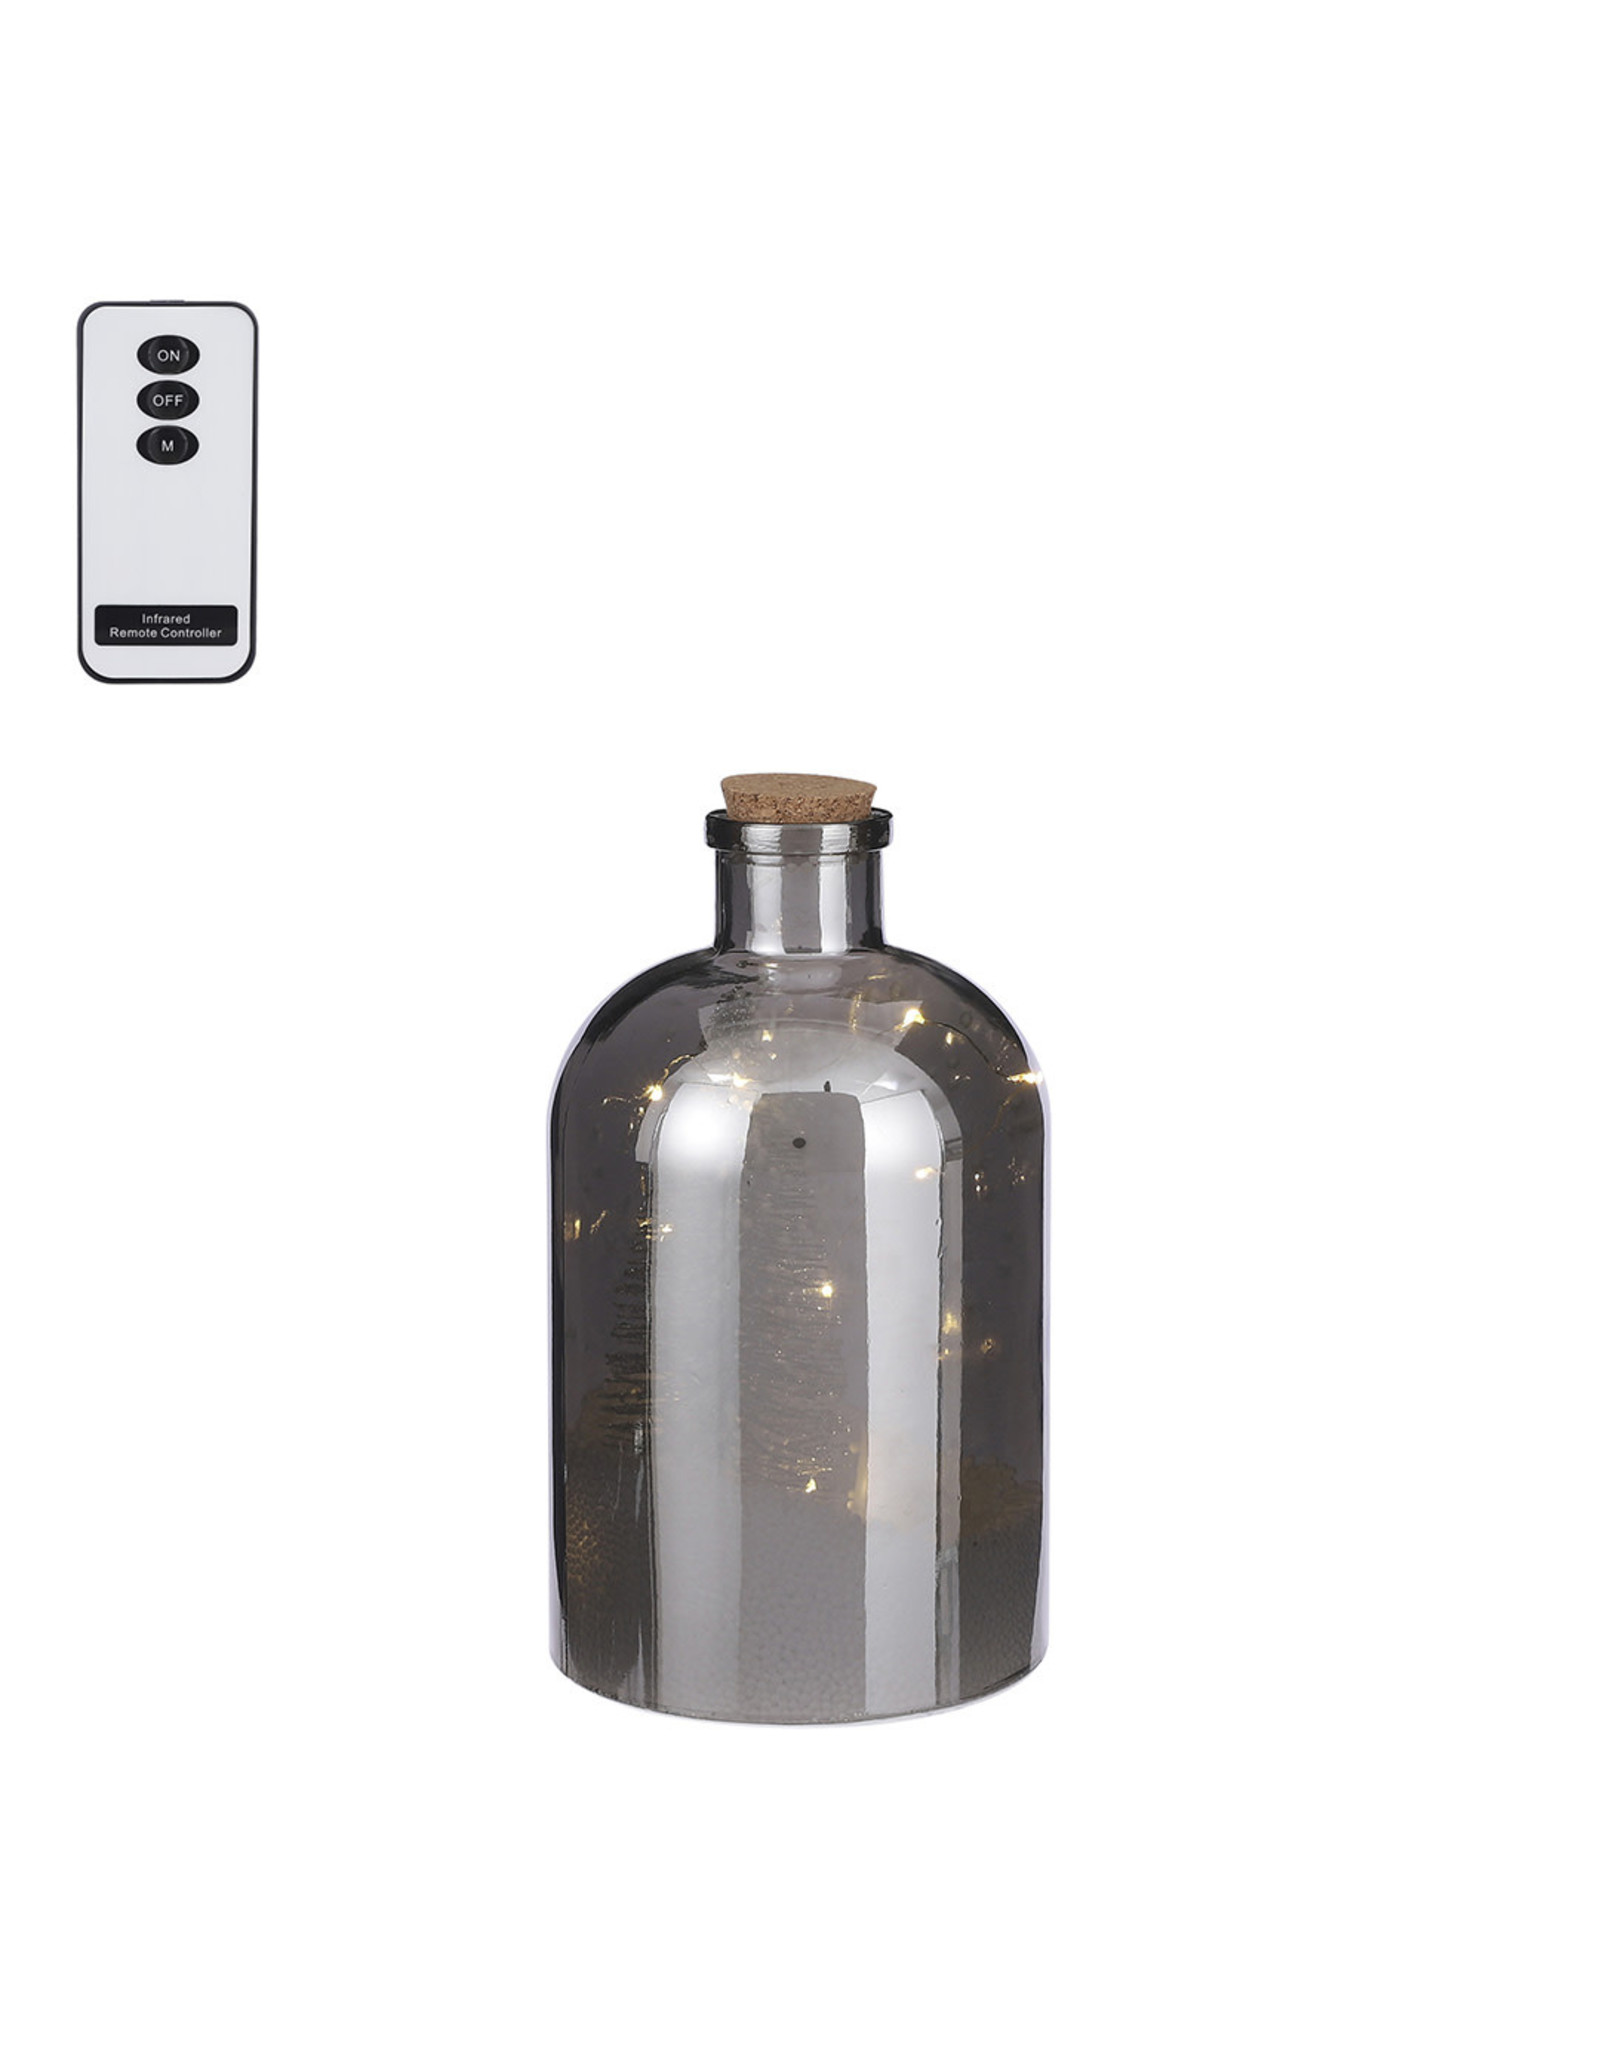 Bottle 10 led BO with 2 function remote